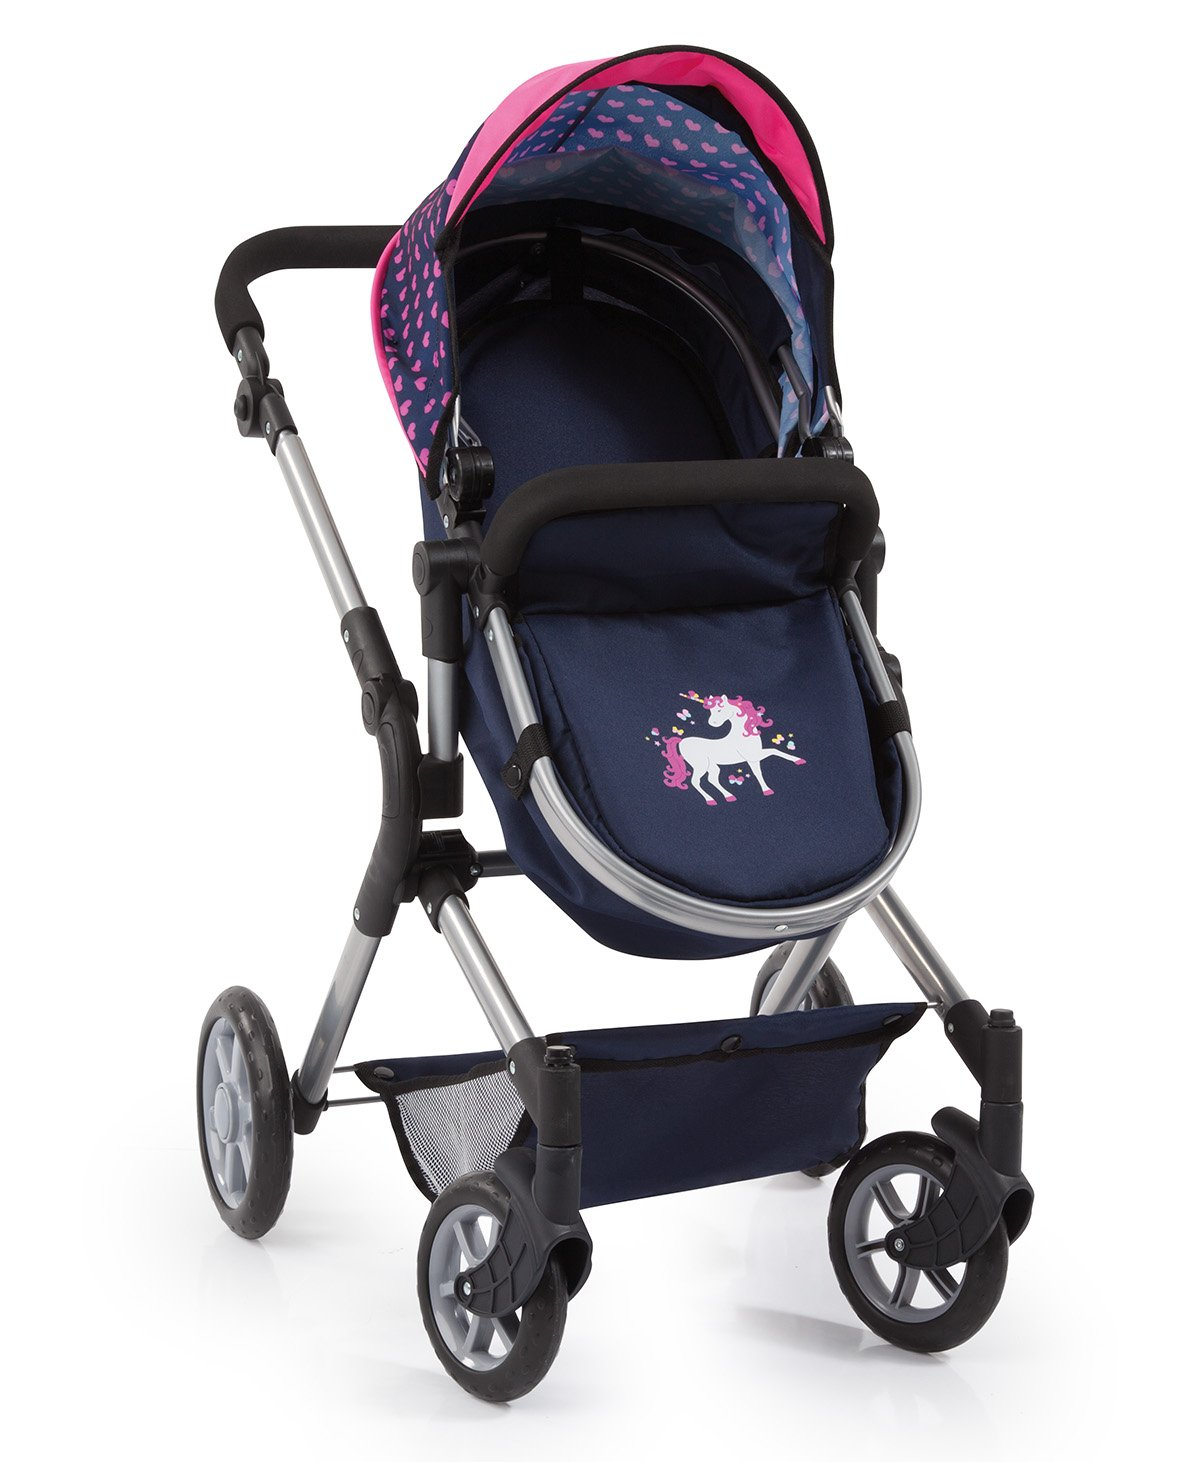 Bayer Design 18154AA City Neo Dolls Pram with Changing Bag, Blue/Pink by Bayer (Image #3)